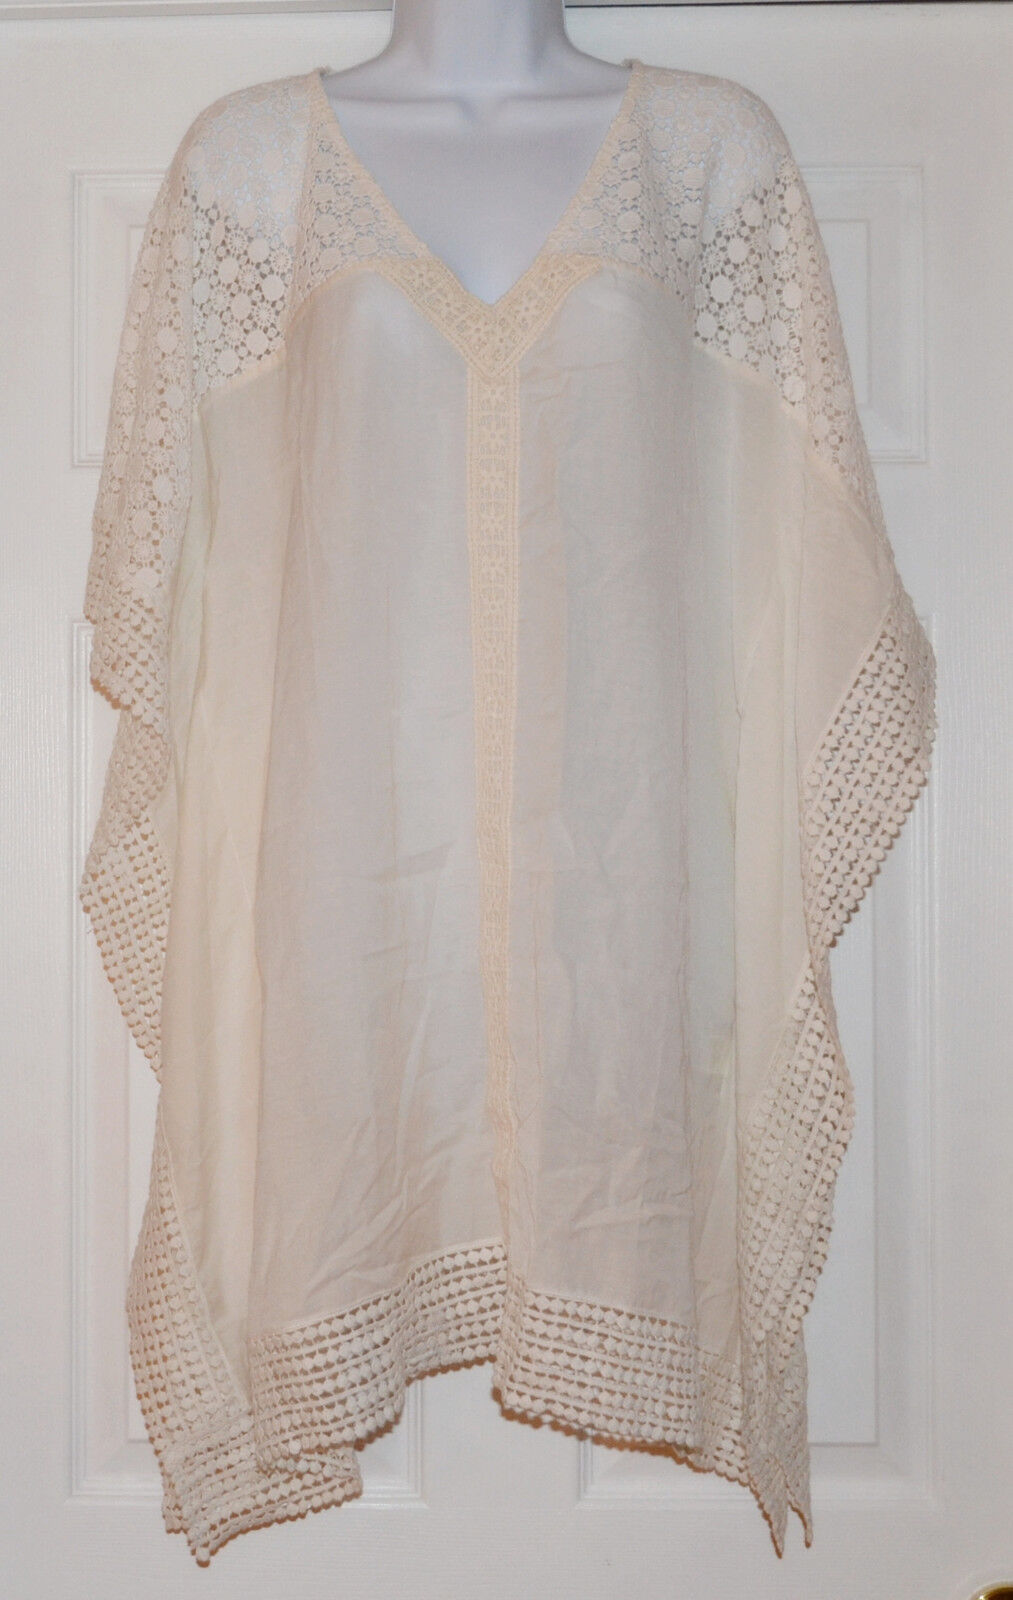 Ella Moss Ivory Crochet Trim Pattern Kimono Tunic Cover-Up Sz S (K28)